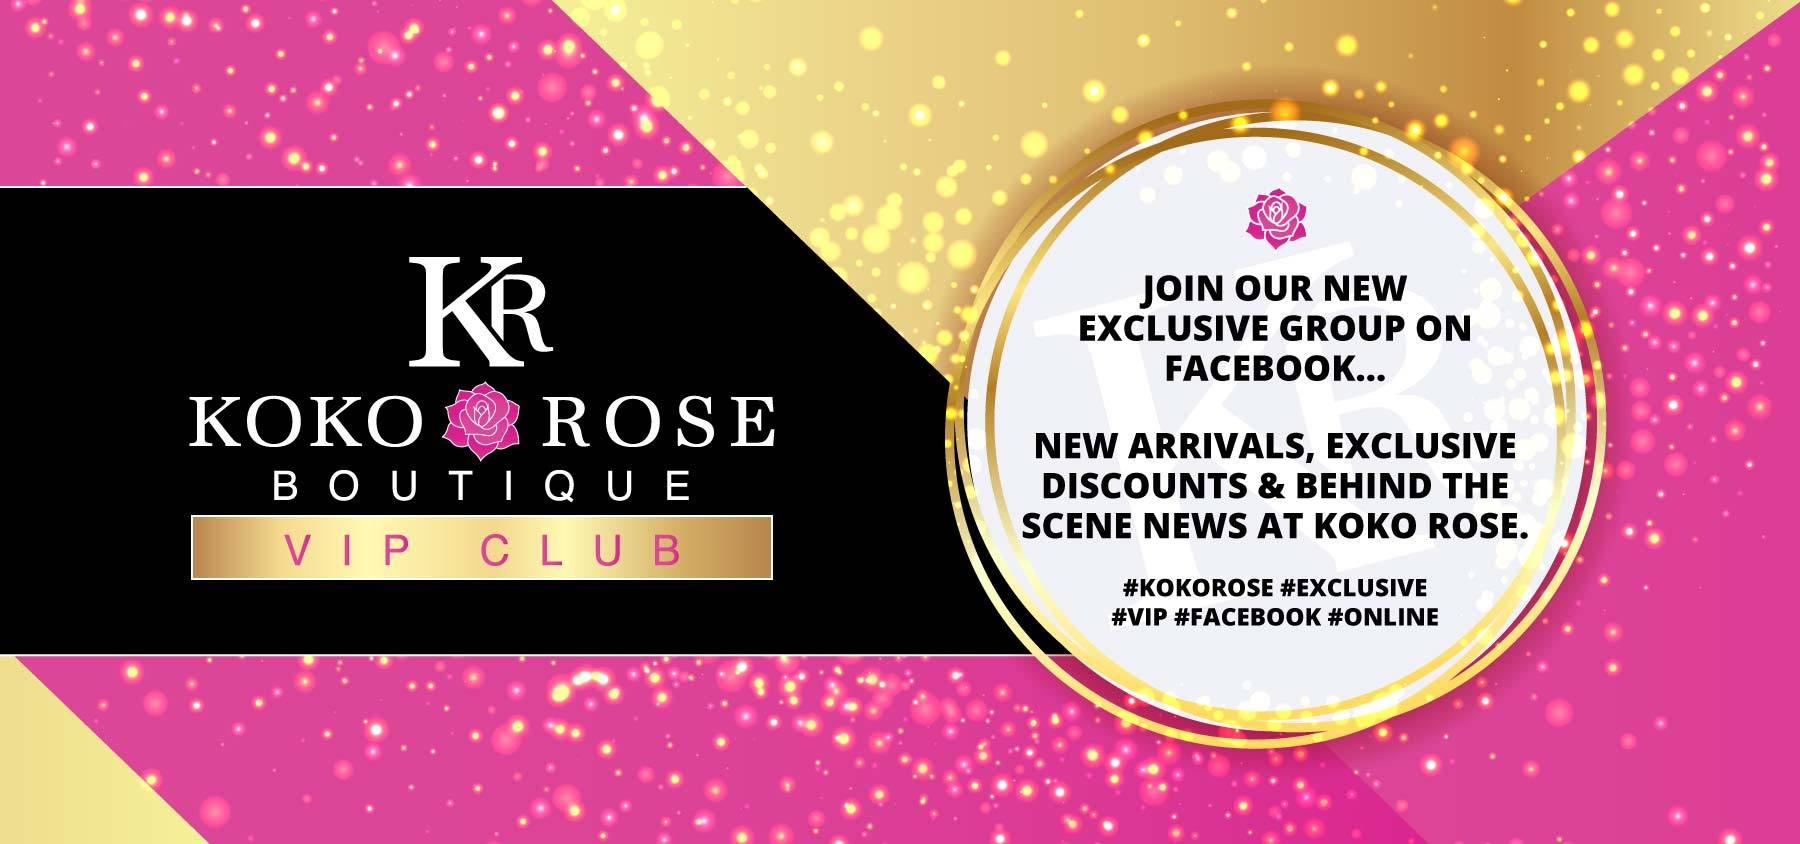 Koko Rose VIP Club